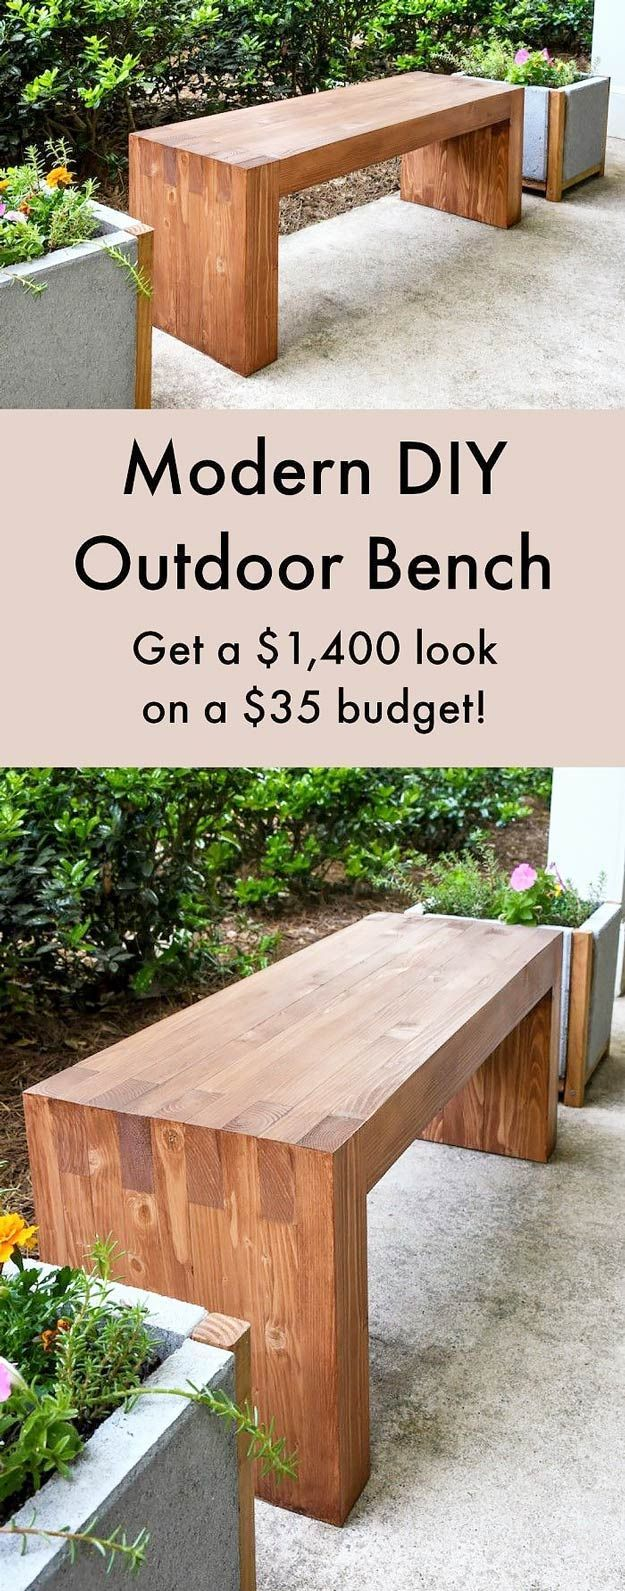 DIY Furniture Store KnockOffs - Do It Yourself Furniture Projects Inspired by Pottery Barn, Restoration Hardware, West Elm. Tutorials and Step by Step Instructions      Williams Sonoma Inspired DIY Outdoor Bench      diyjoy.com/...